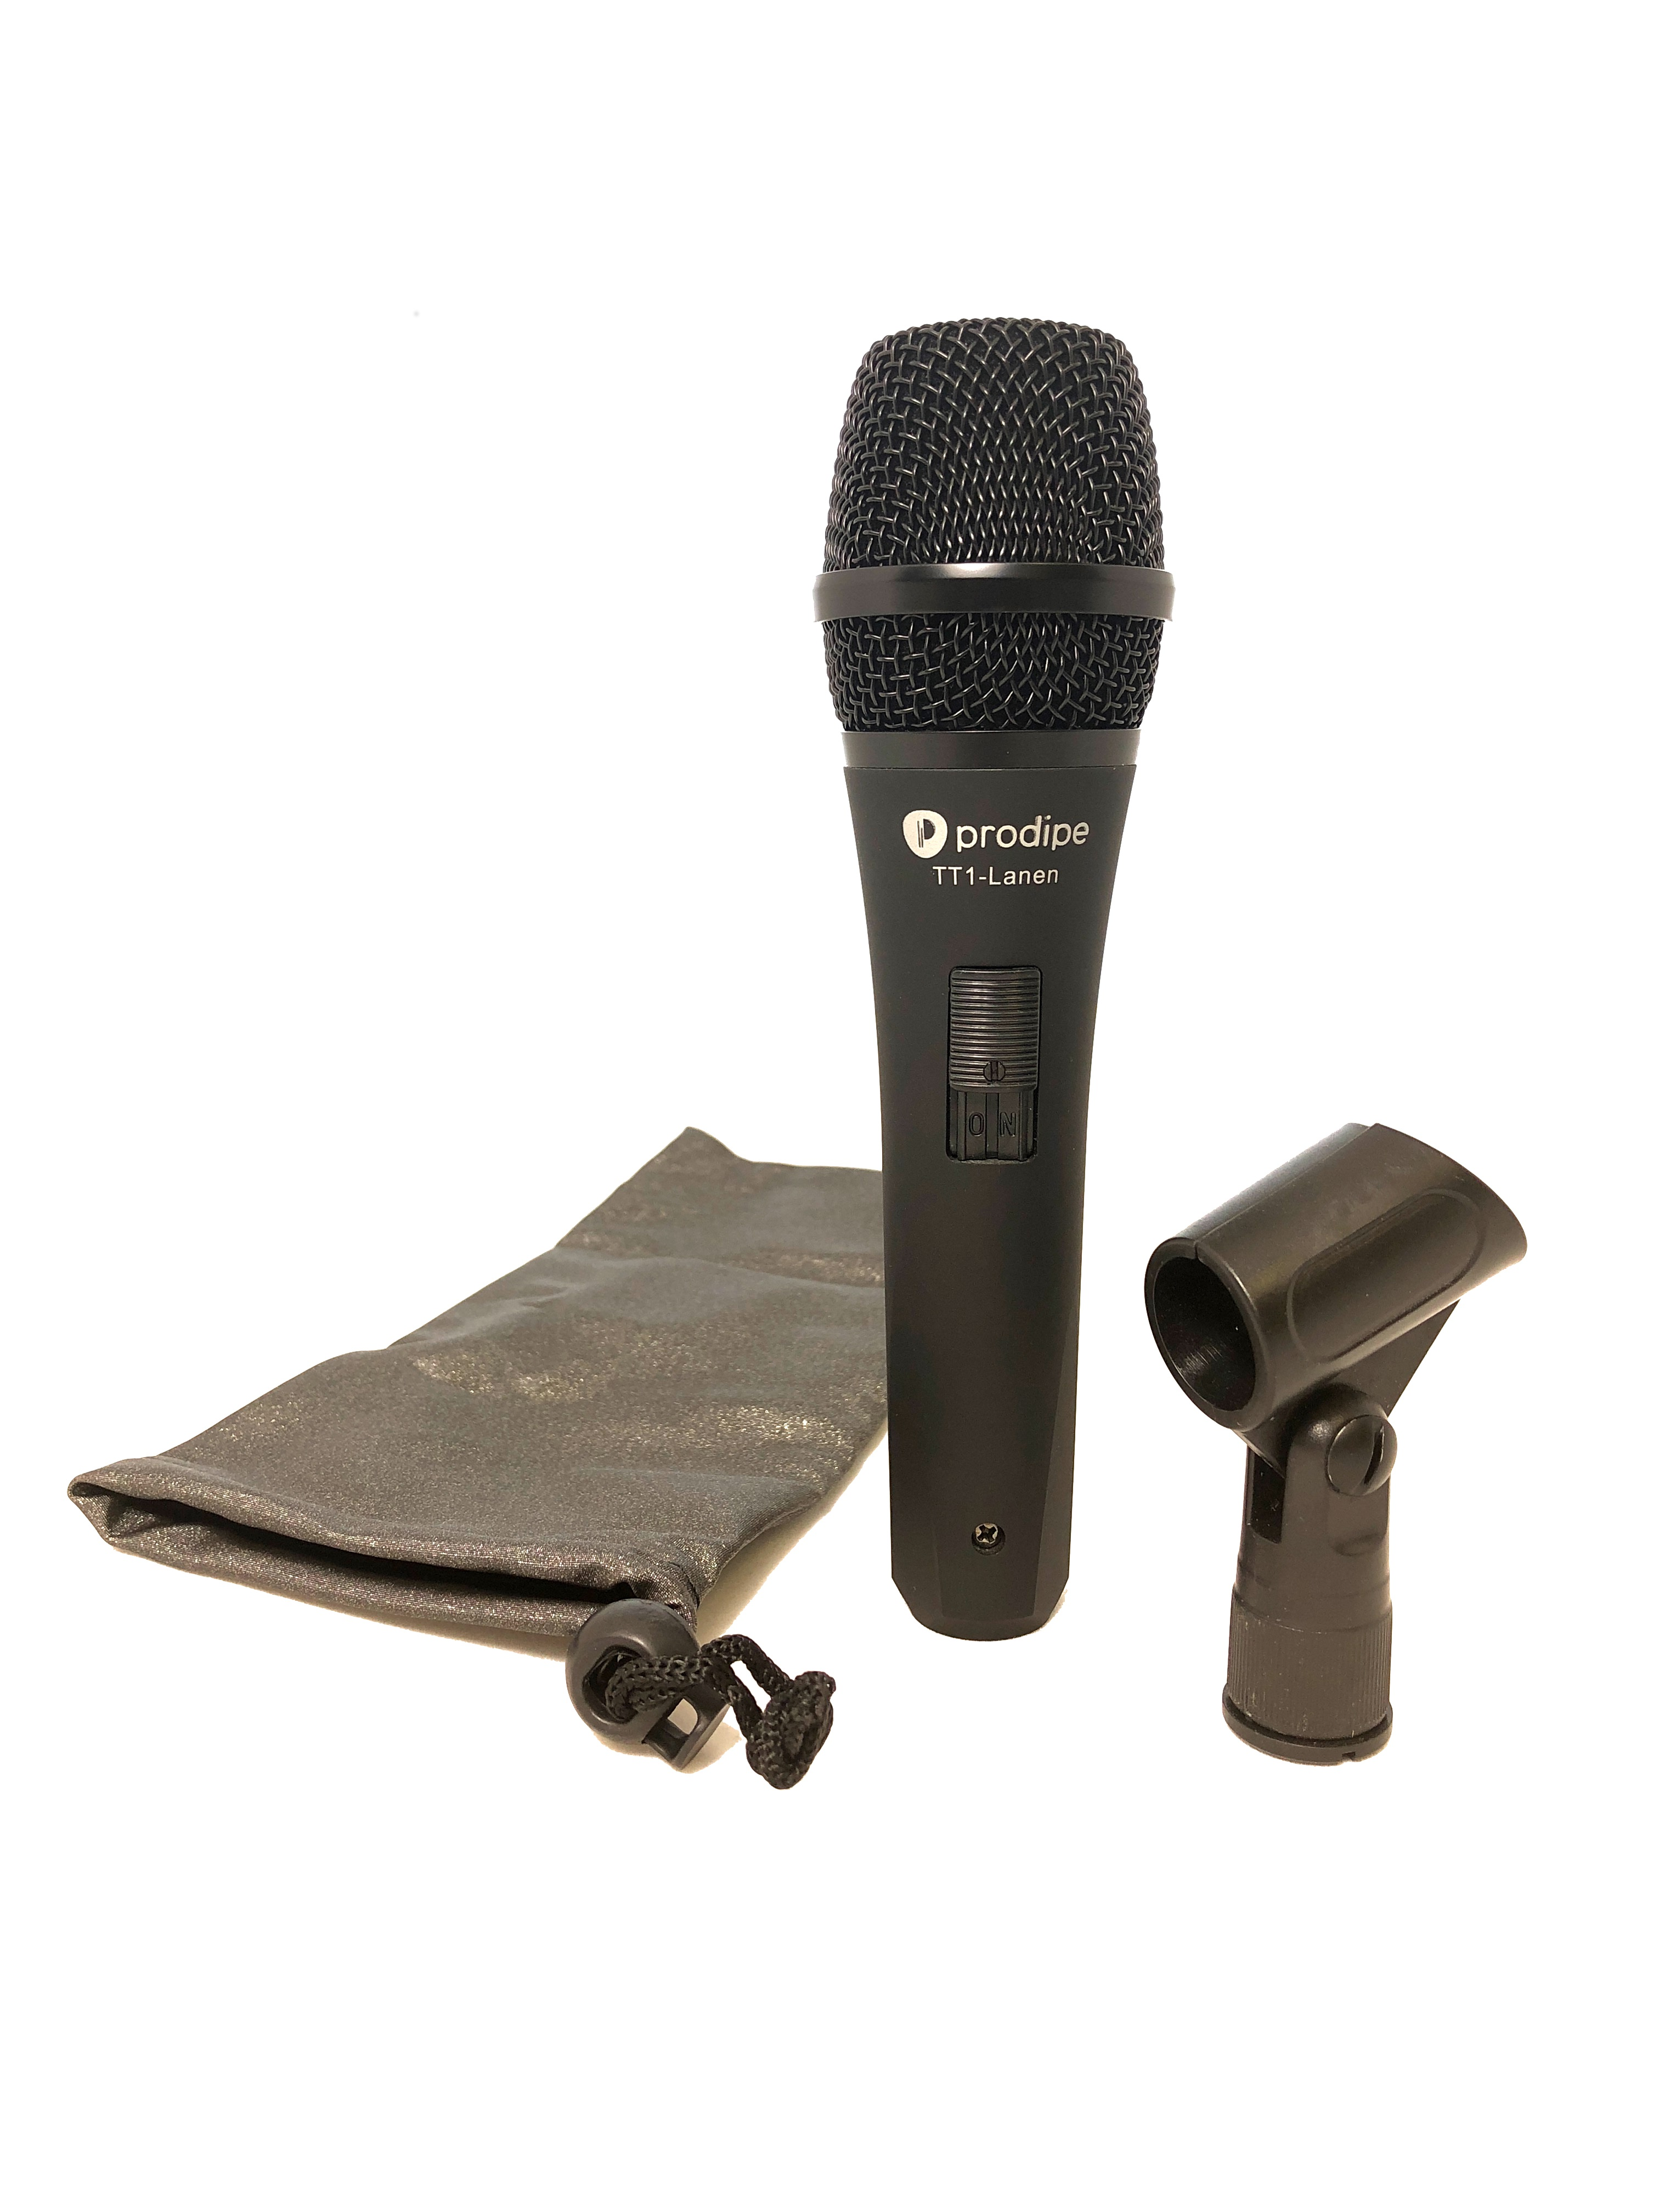 Prodipe TT1-Lanen mic and accessories